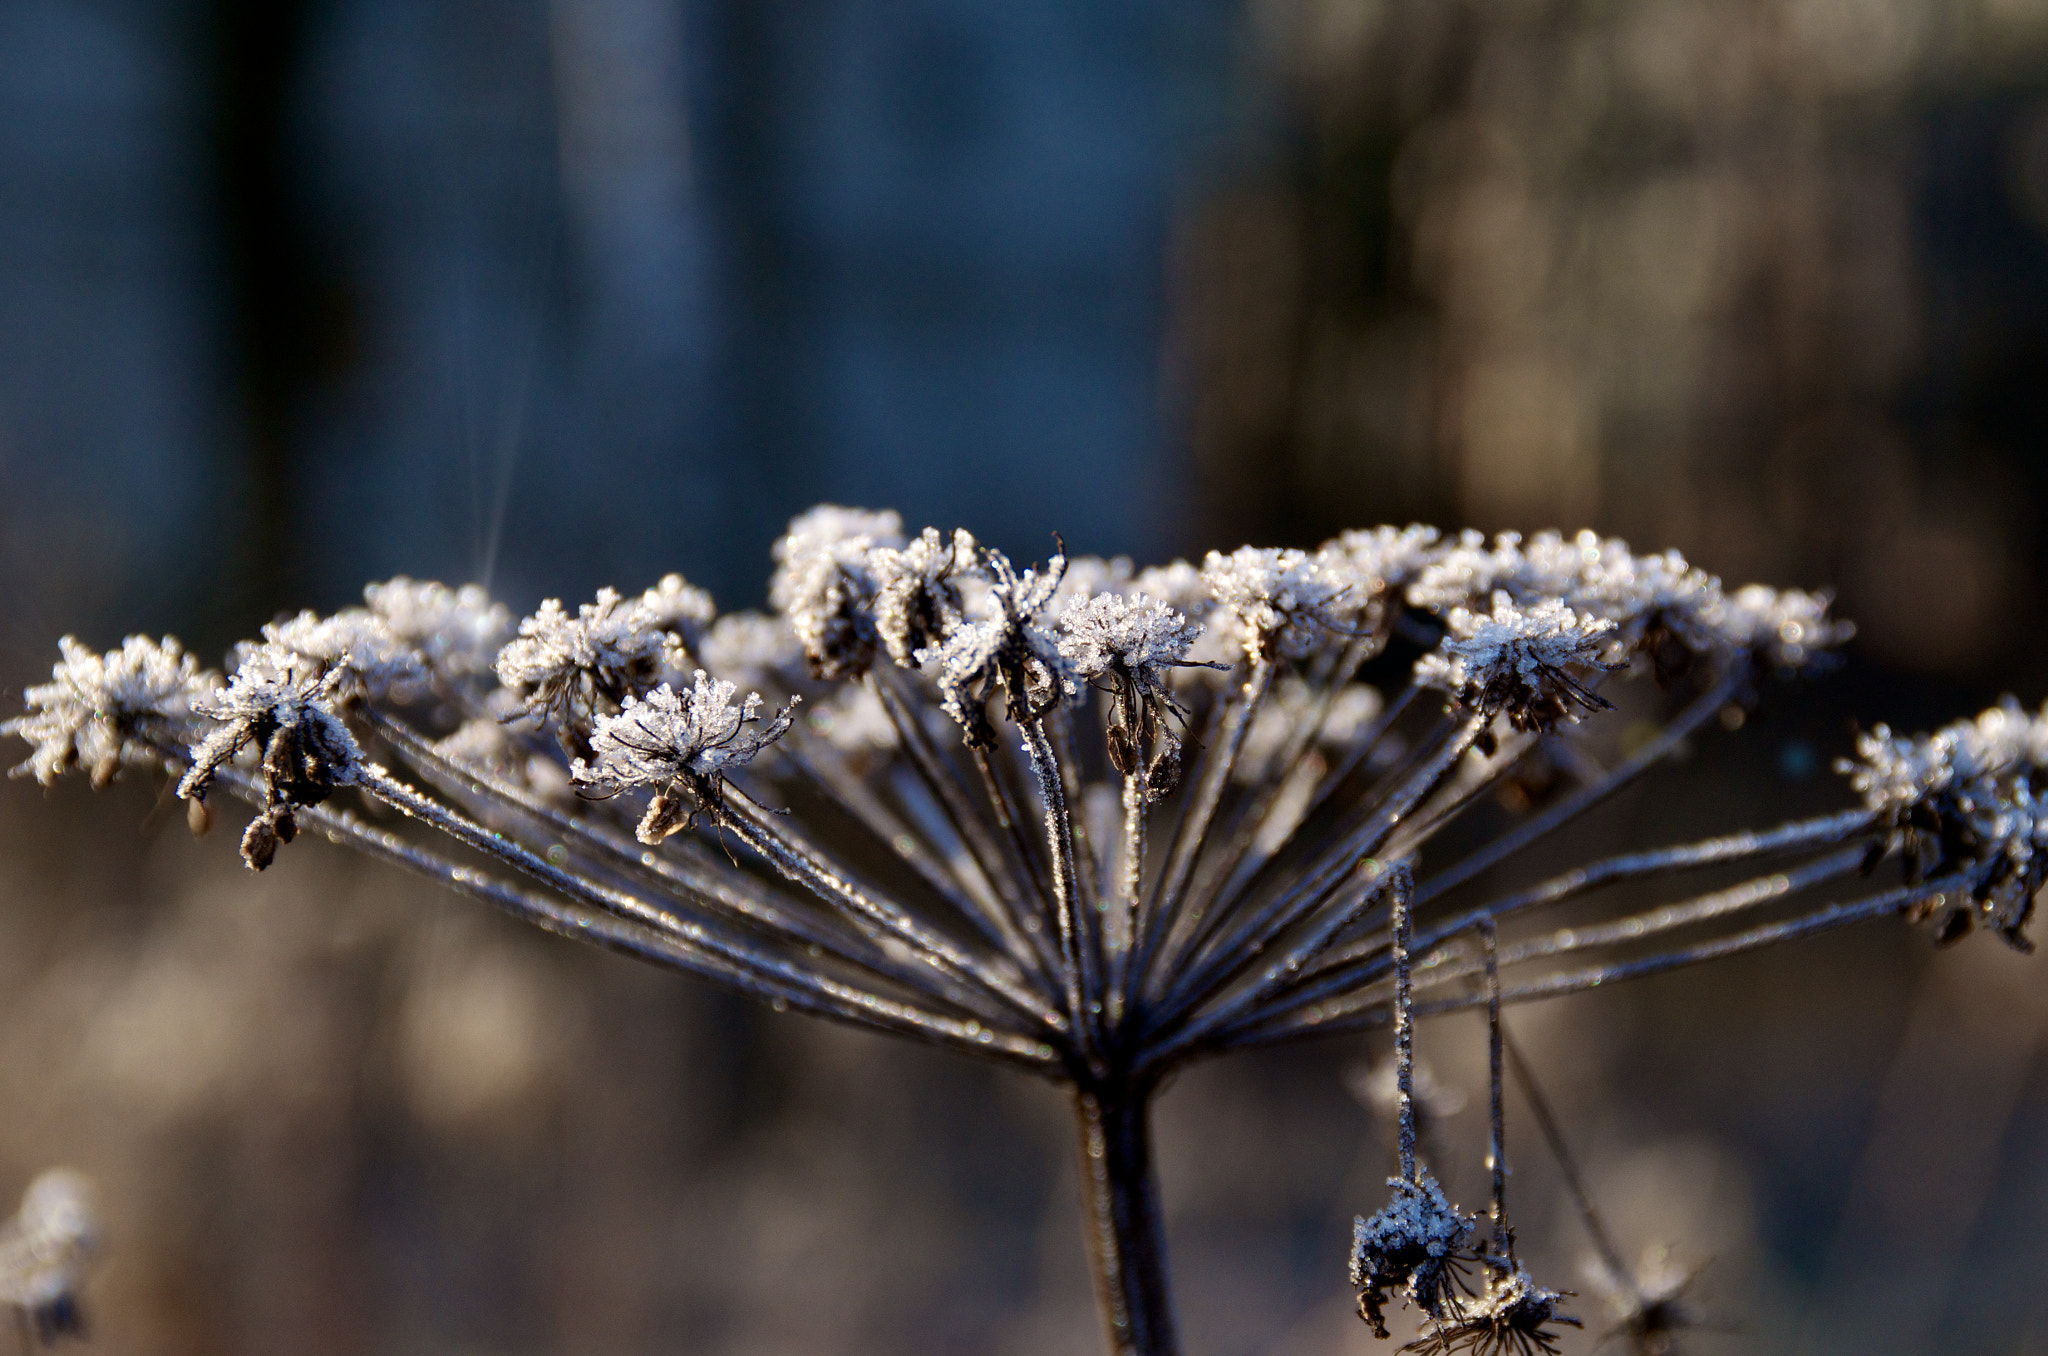 Photograph The pace of the Winter by Andrey Alekseev on 500px